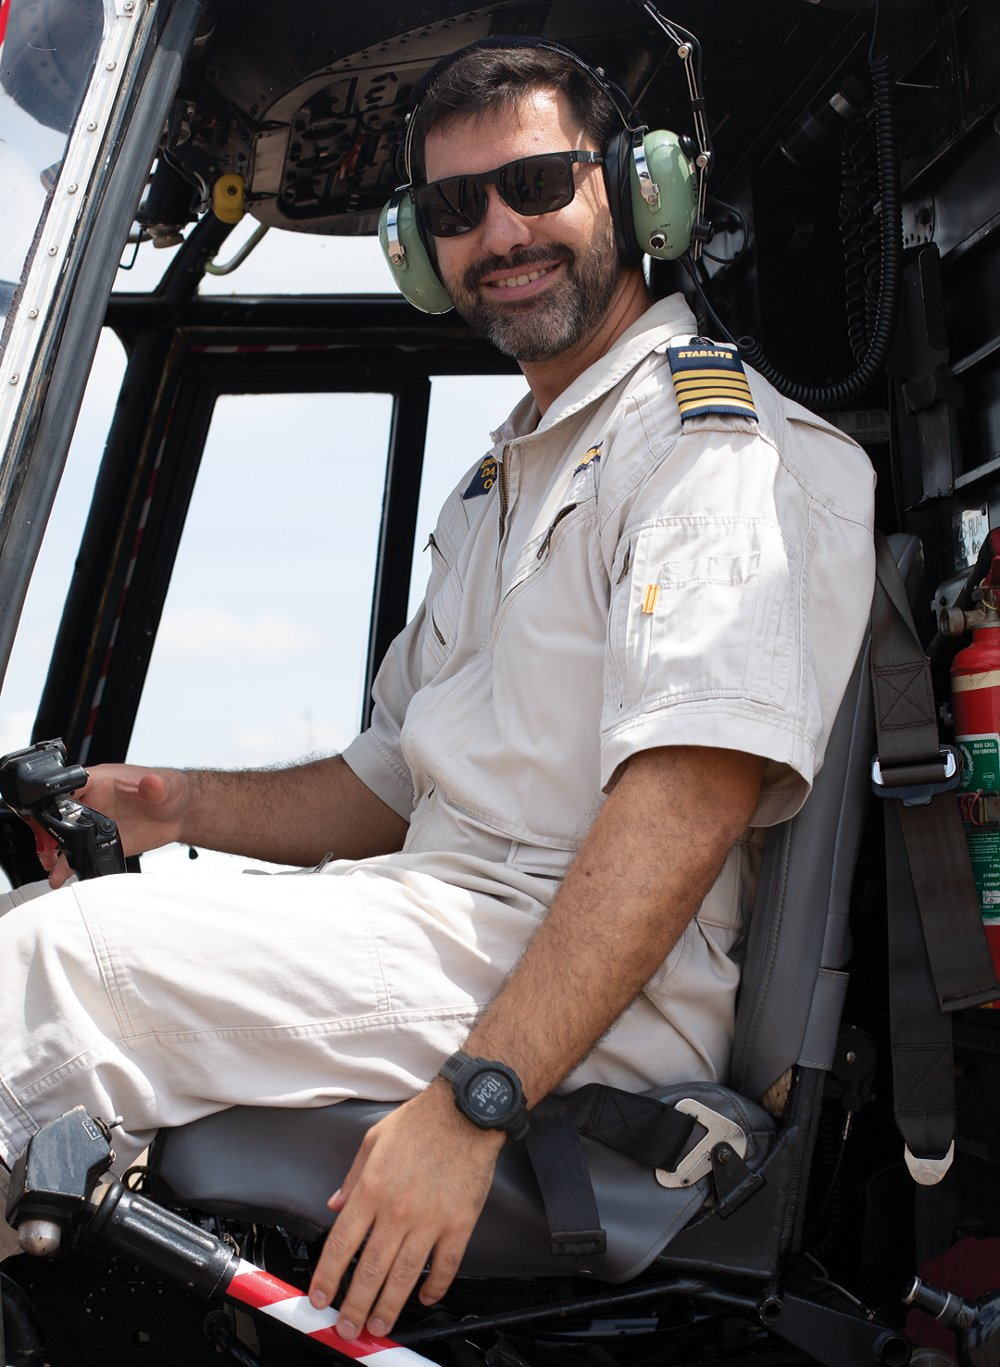 Starlite MEDEVAC pilot Captain Daniel Erasmus is shown behind the controls of a helicopter.